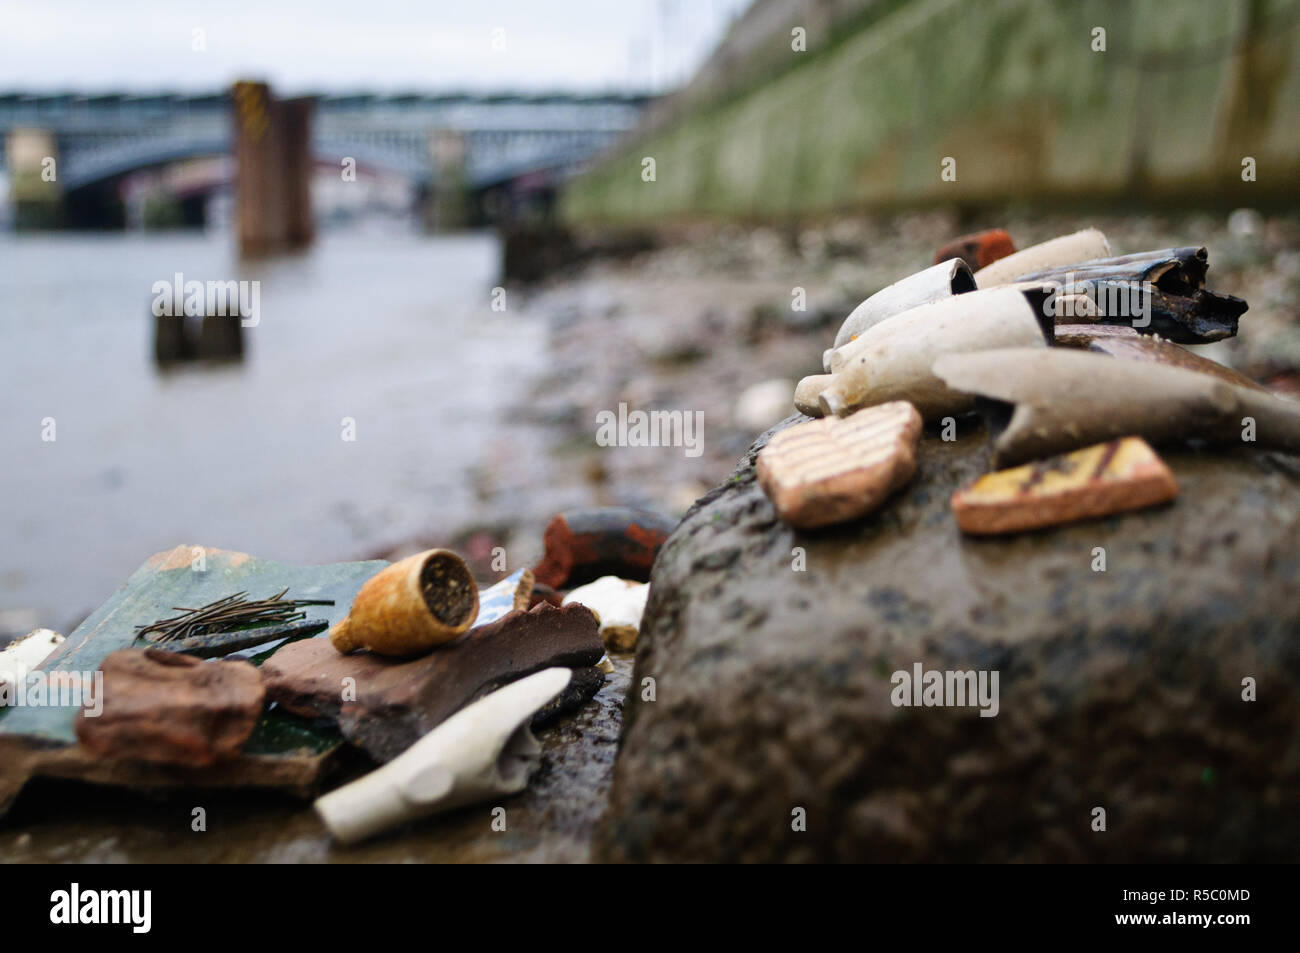 Close up of old objects found on the River Thames - Stock Image